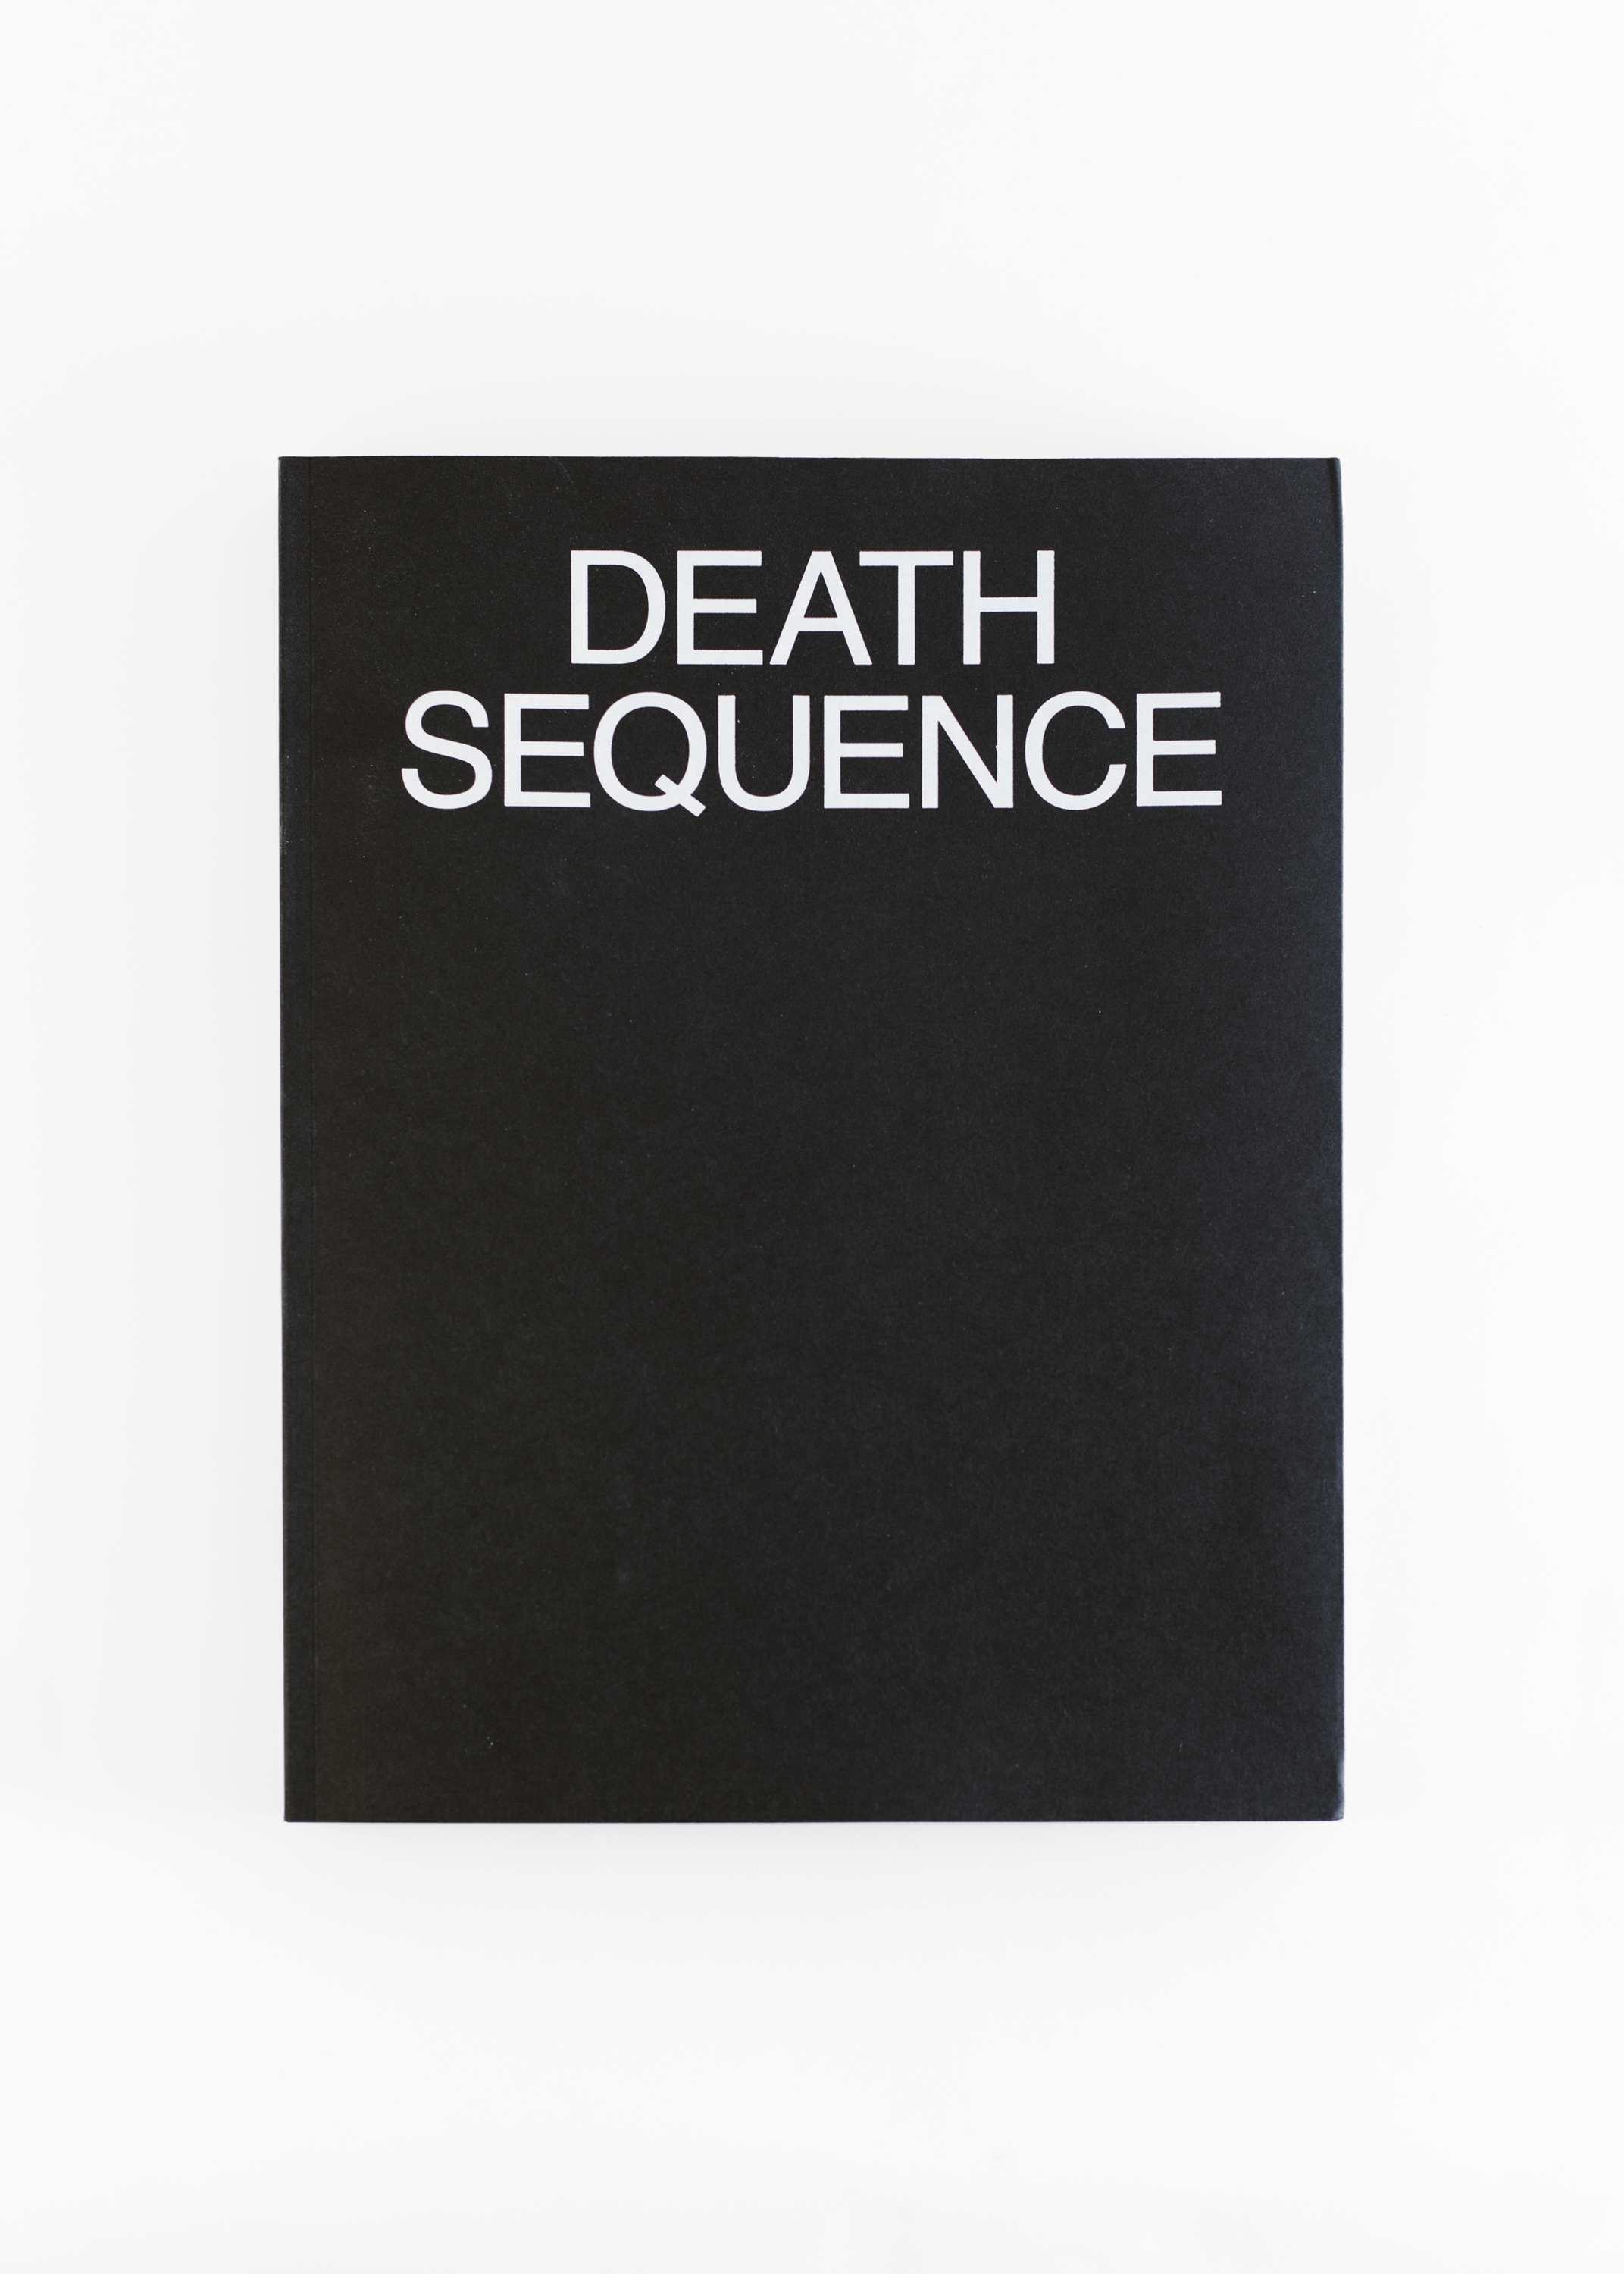 "Sam Falls - Death Sequence</br>368 pages 22.5 x 30.5 cm</br>Karma 2014</br>€40 <a href=""https://www.paypal.com/cgi-bin/webscr?cmd=_s-xclick&amp;hosted_button_id=GPTNVXLL392ME"">Add to Cart</a>"